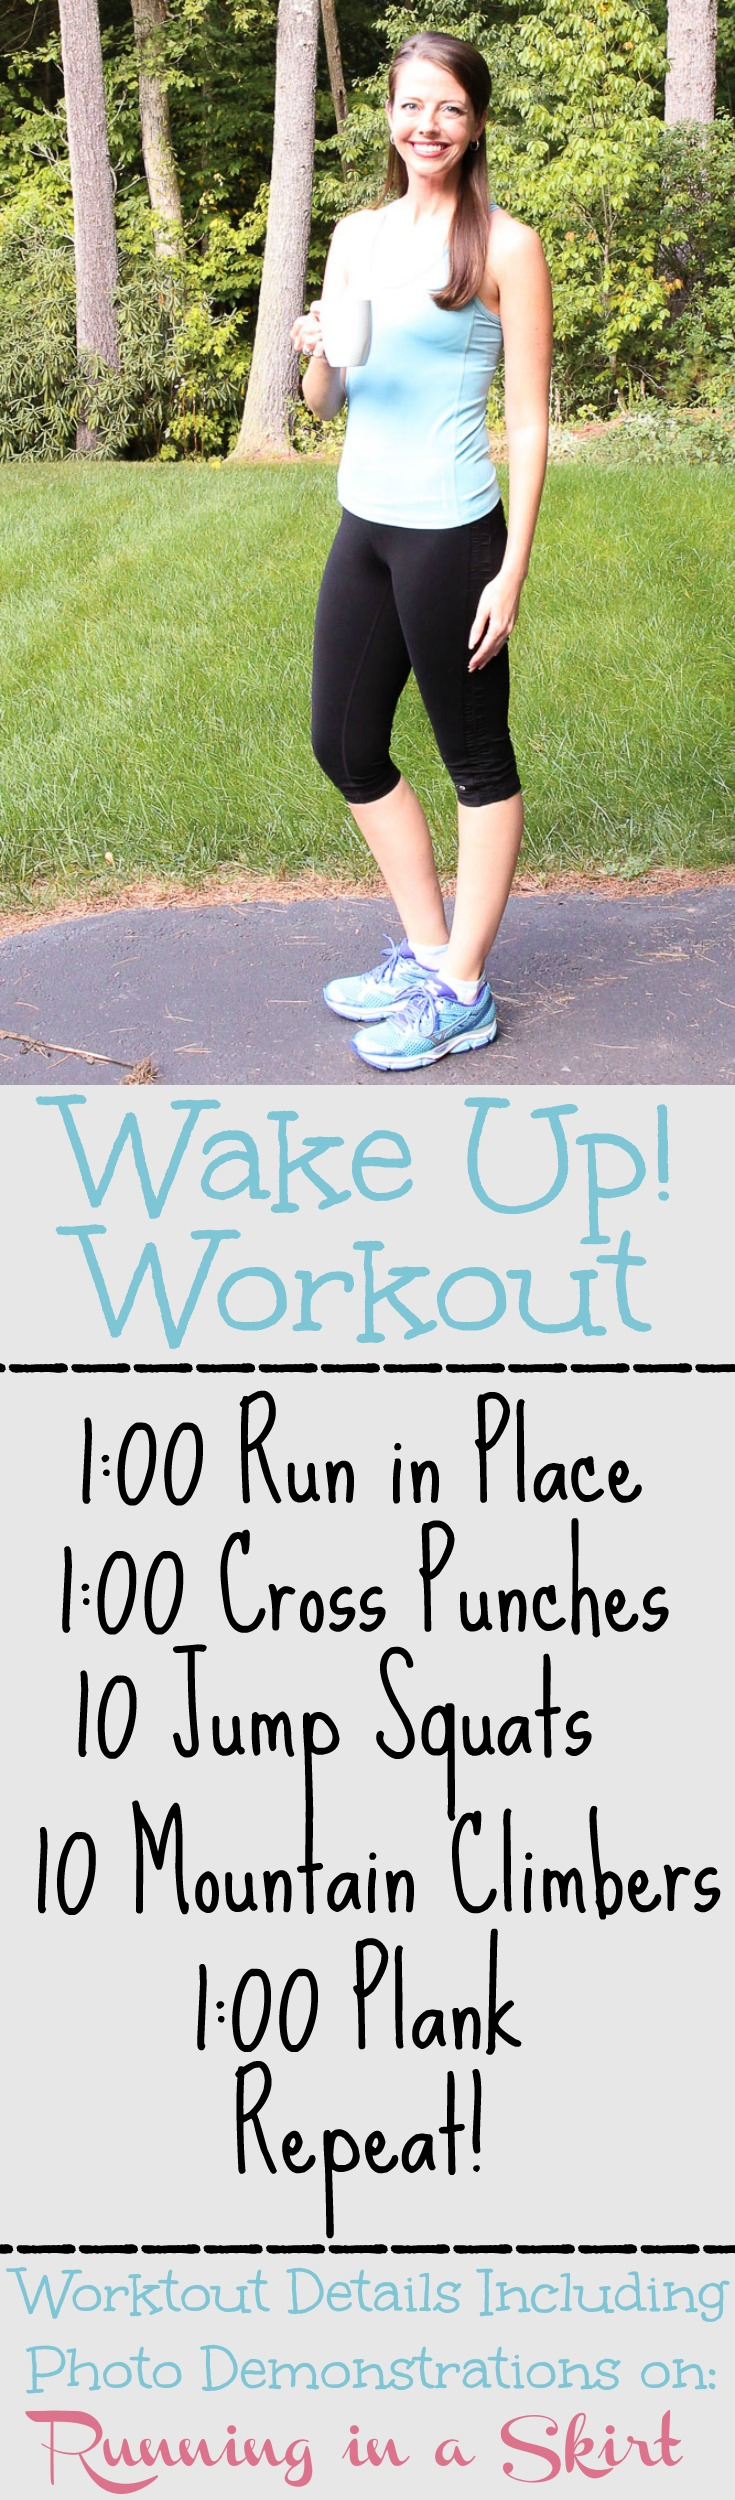 10 Minute Morning Wake Up Workout. Photo demonstrations on Running in a Skirt.